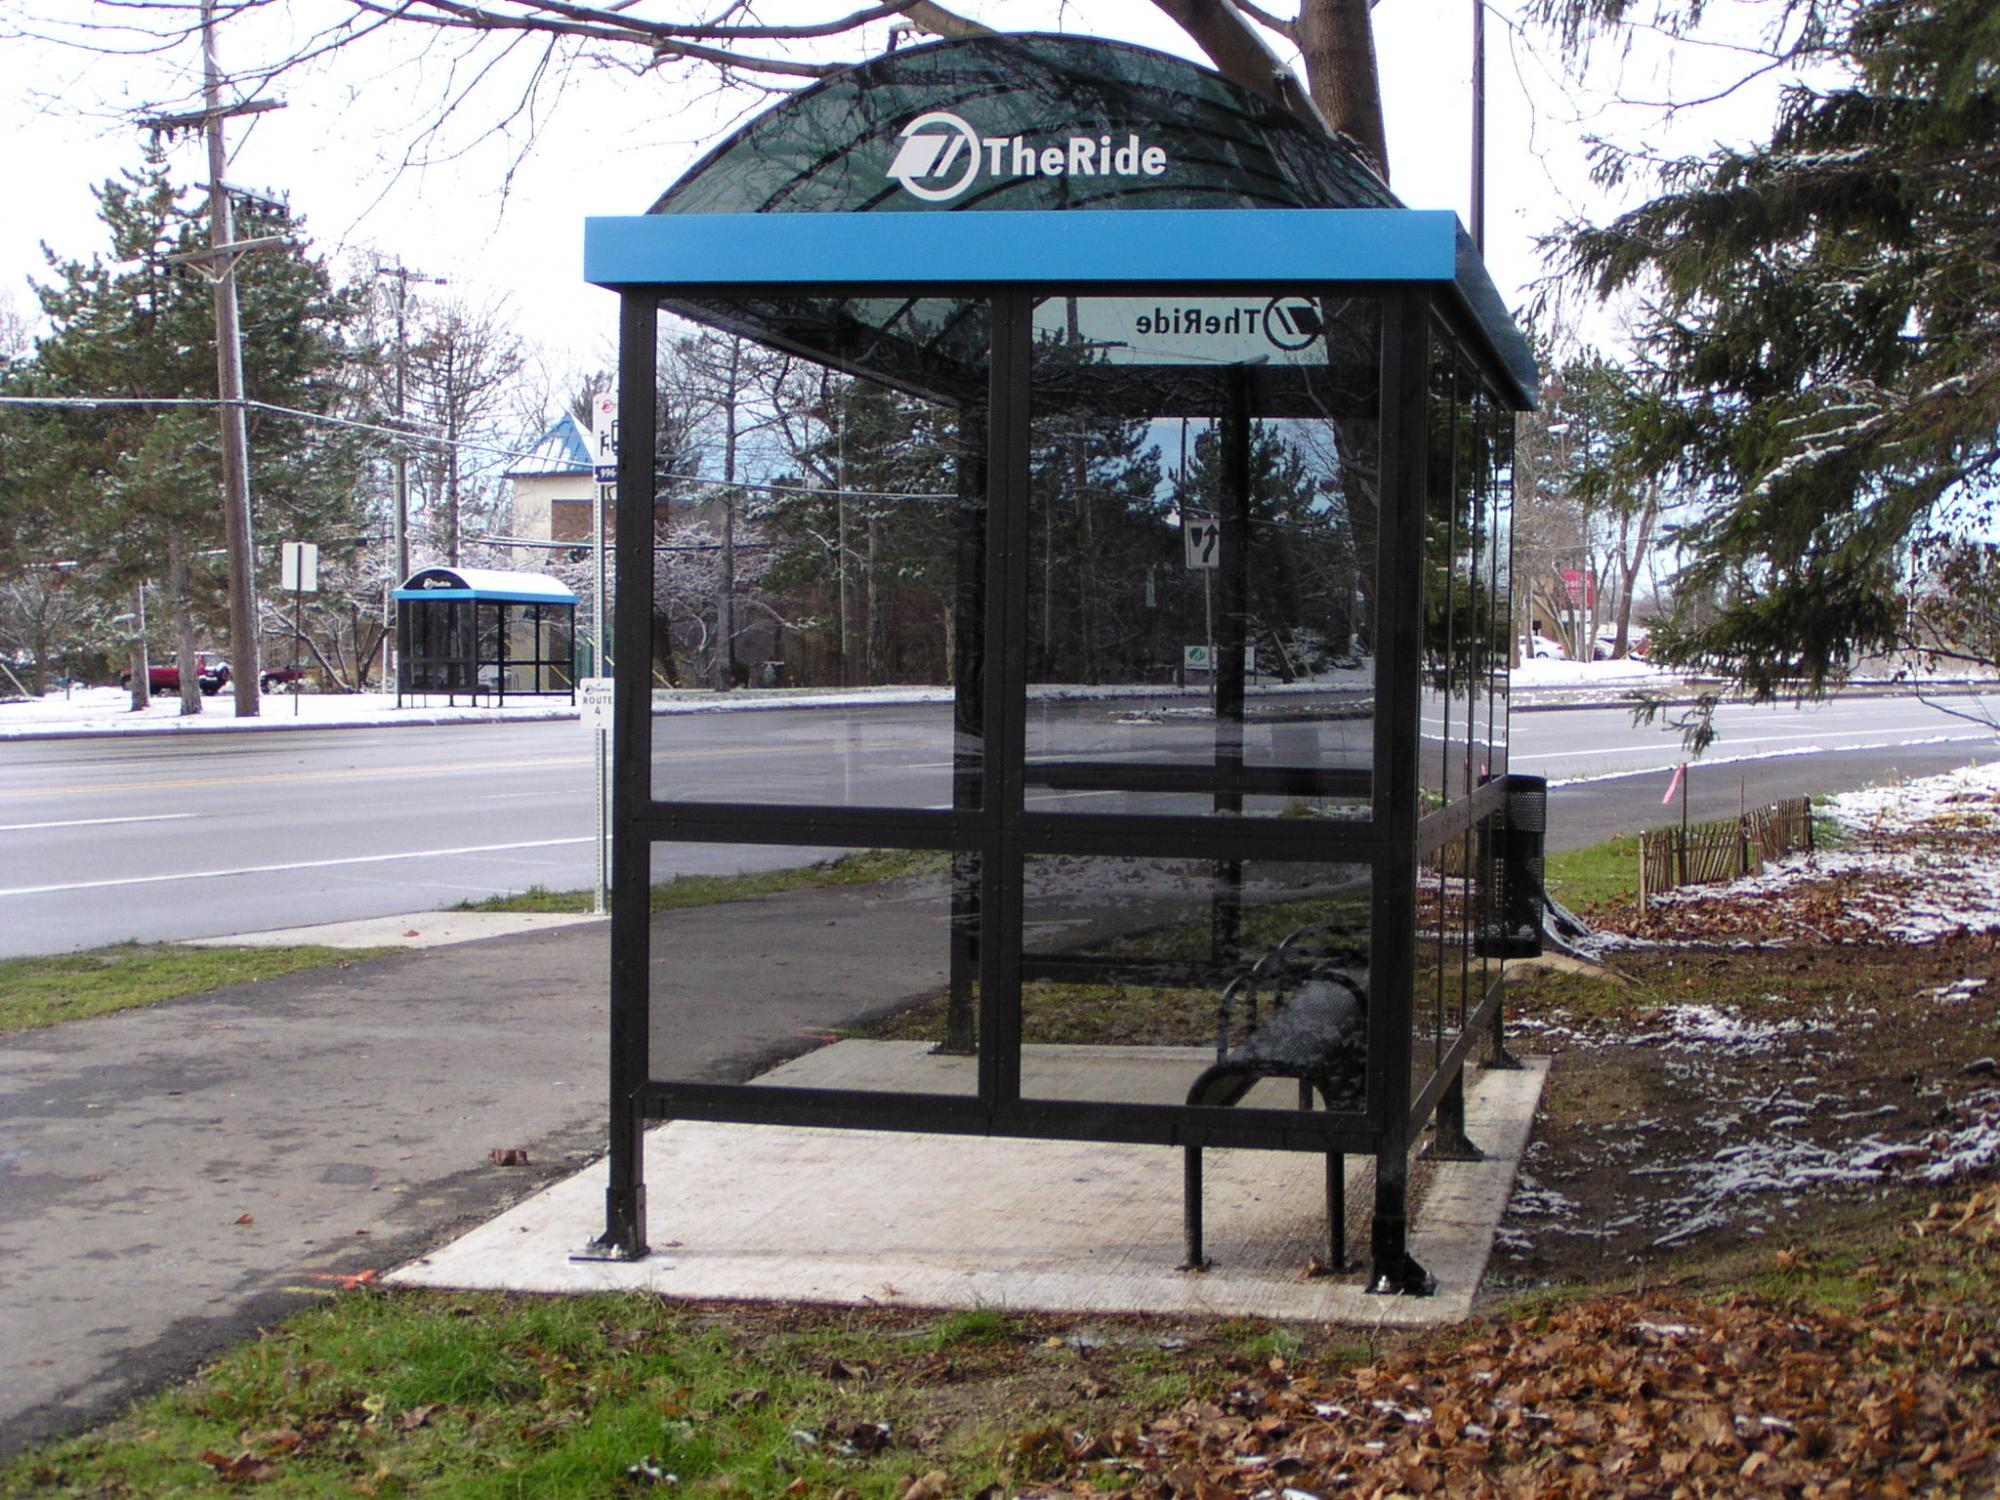 Covered bus stop